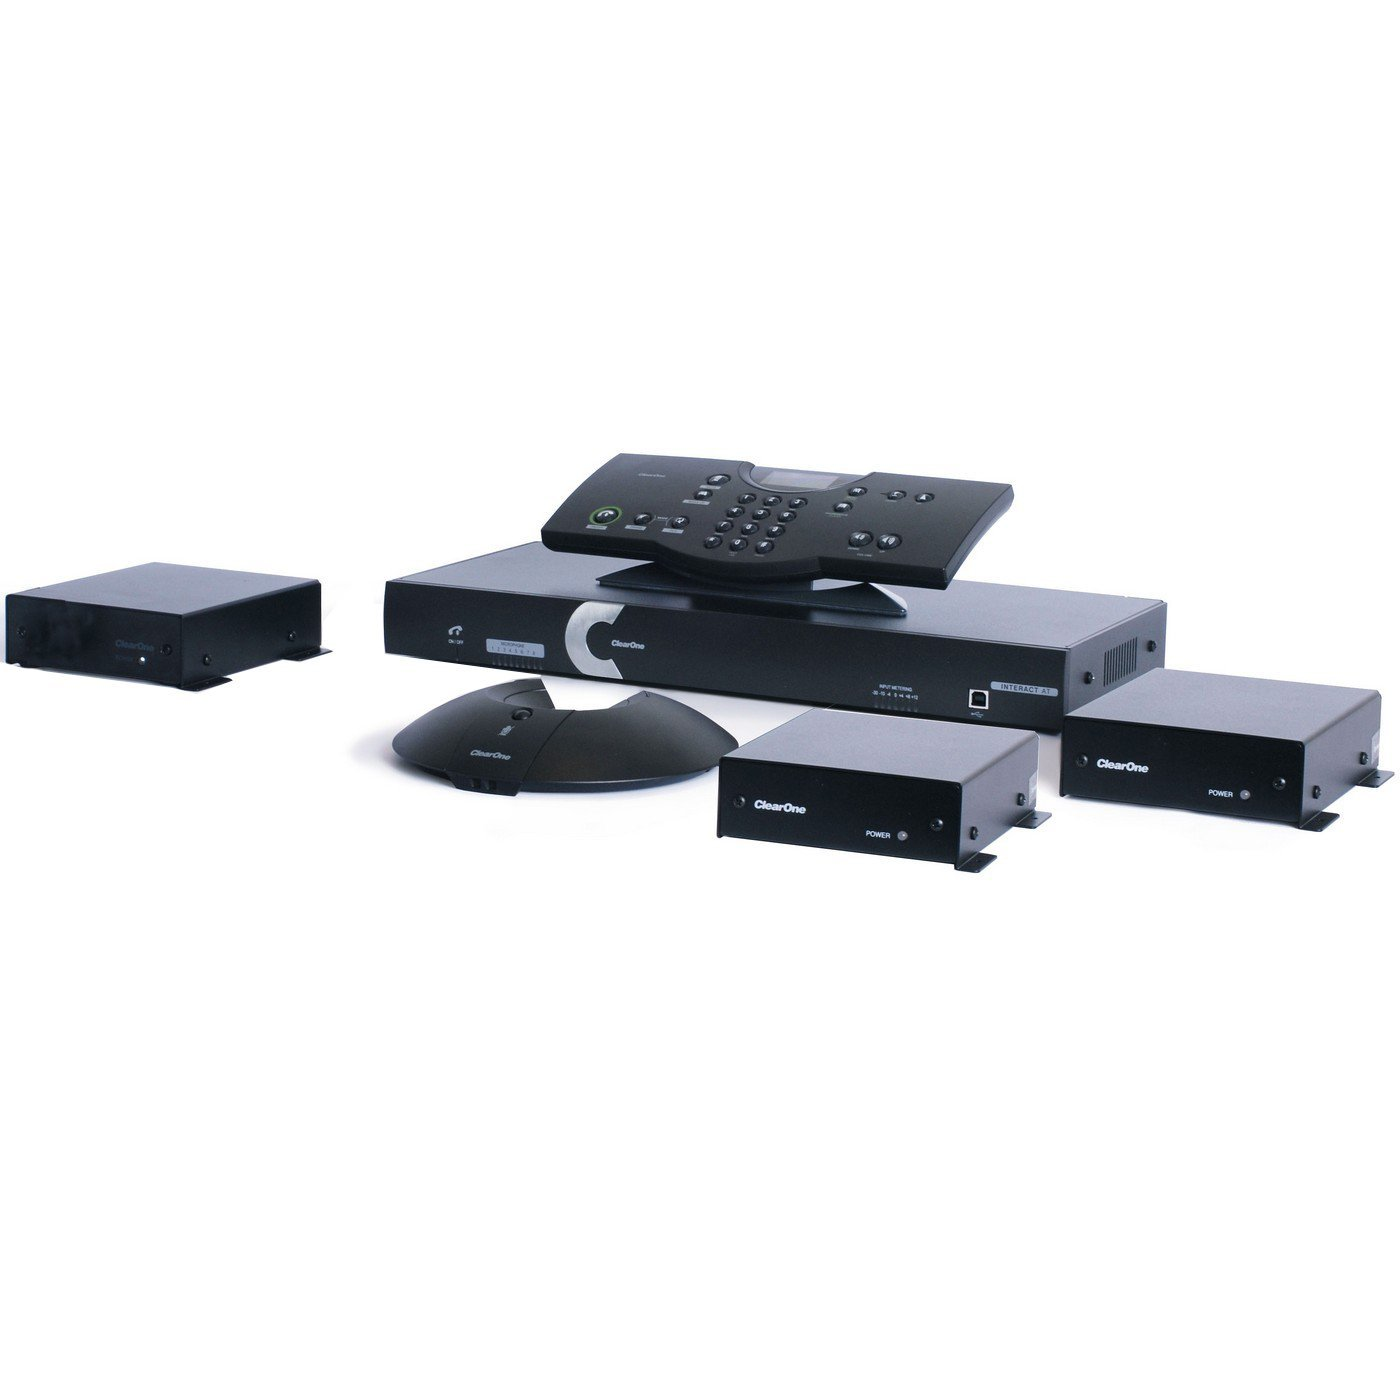 ClearOne Interact AT Bundle K | Complete Audio Conferencing Solution Two Microphone Box Wireless Controller 930-154-501